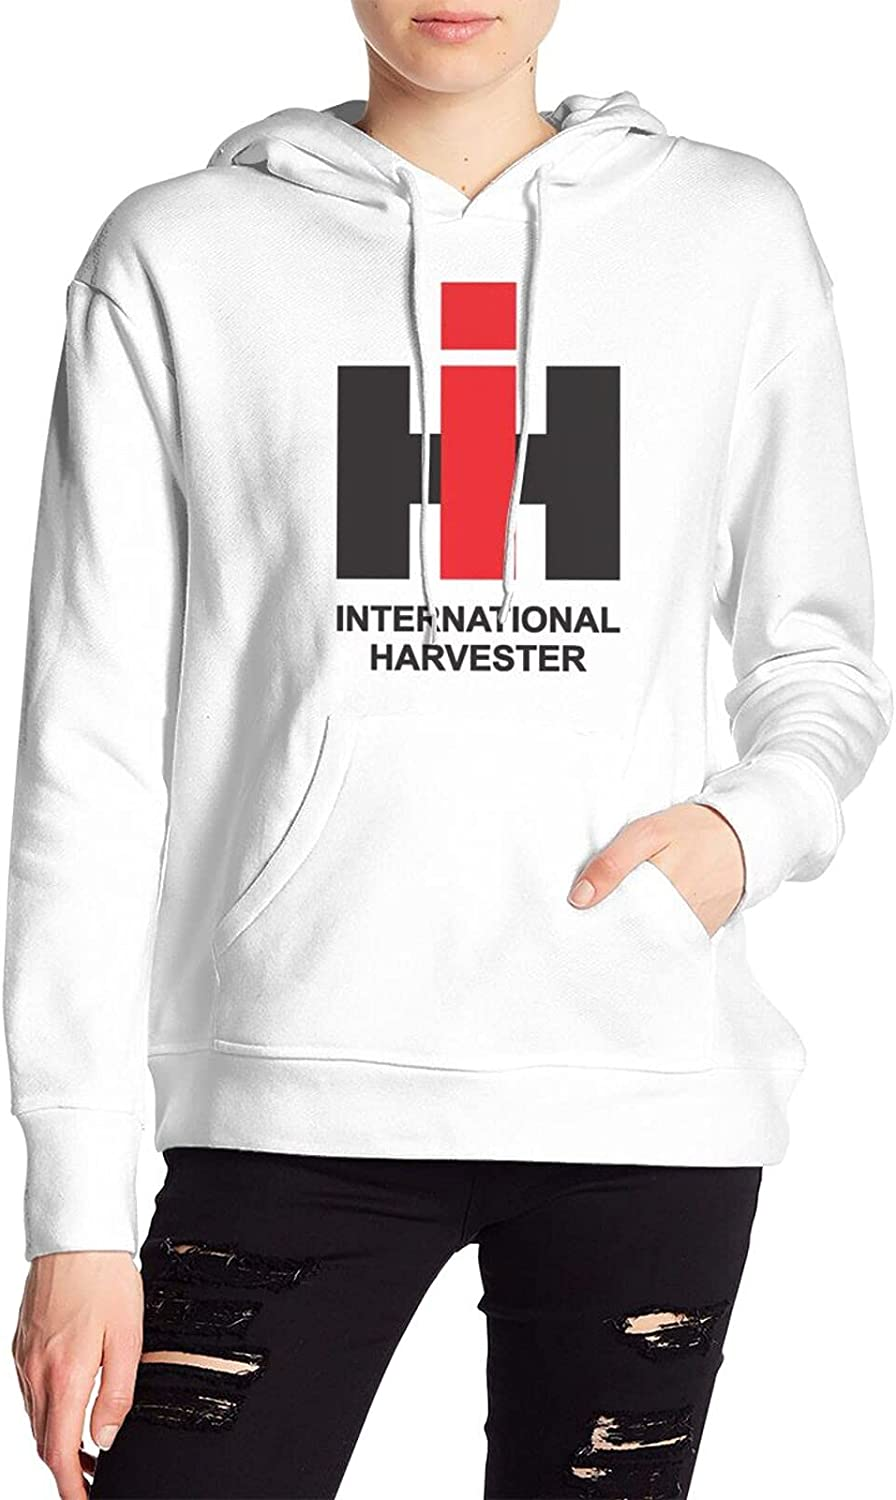 Ih International Harvester Sweater Fashion Hoody With Pocket For Mens Women